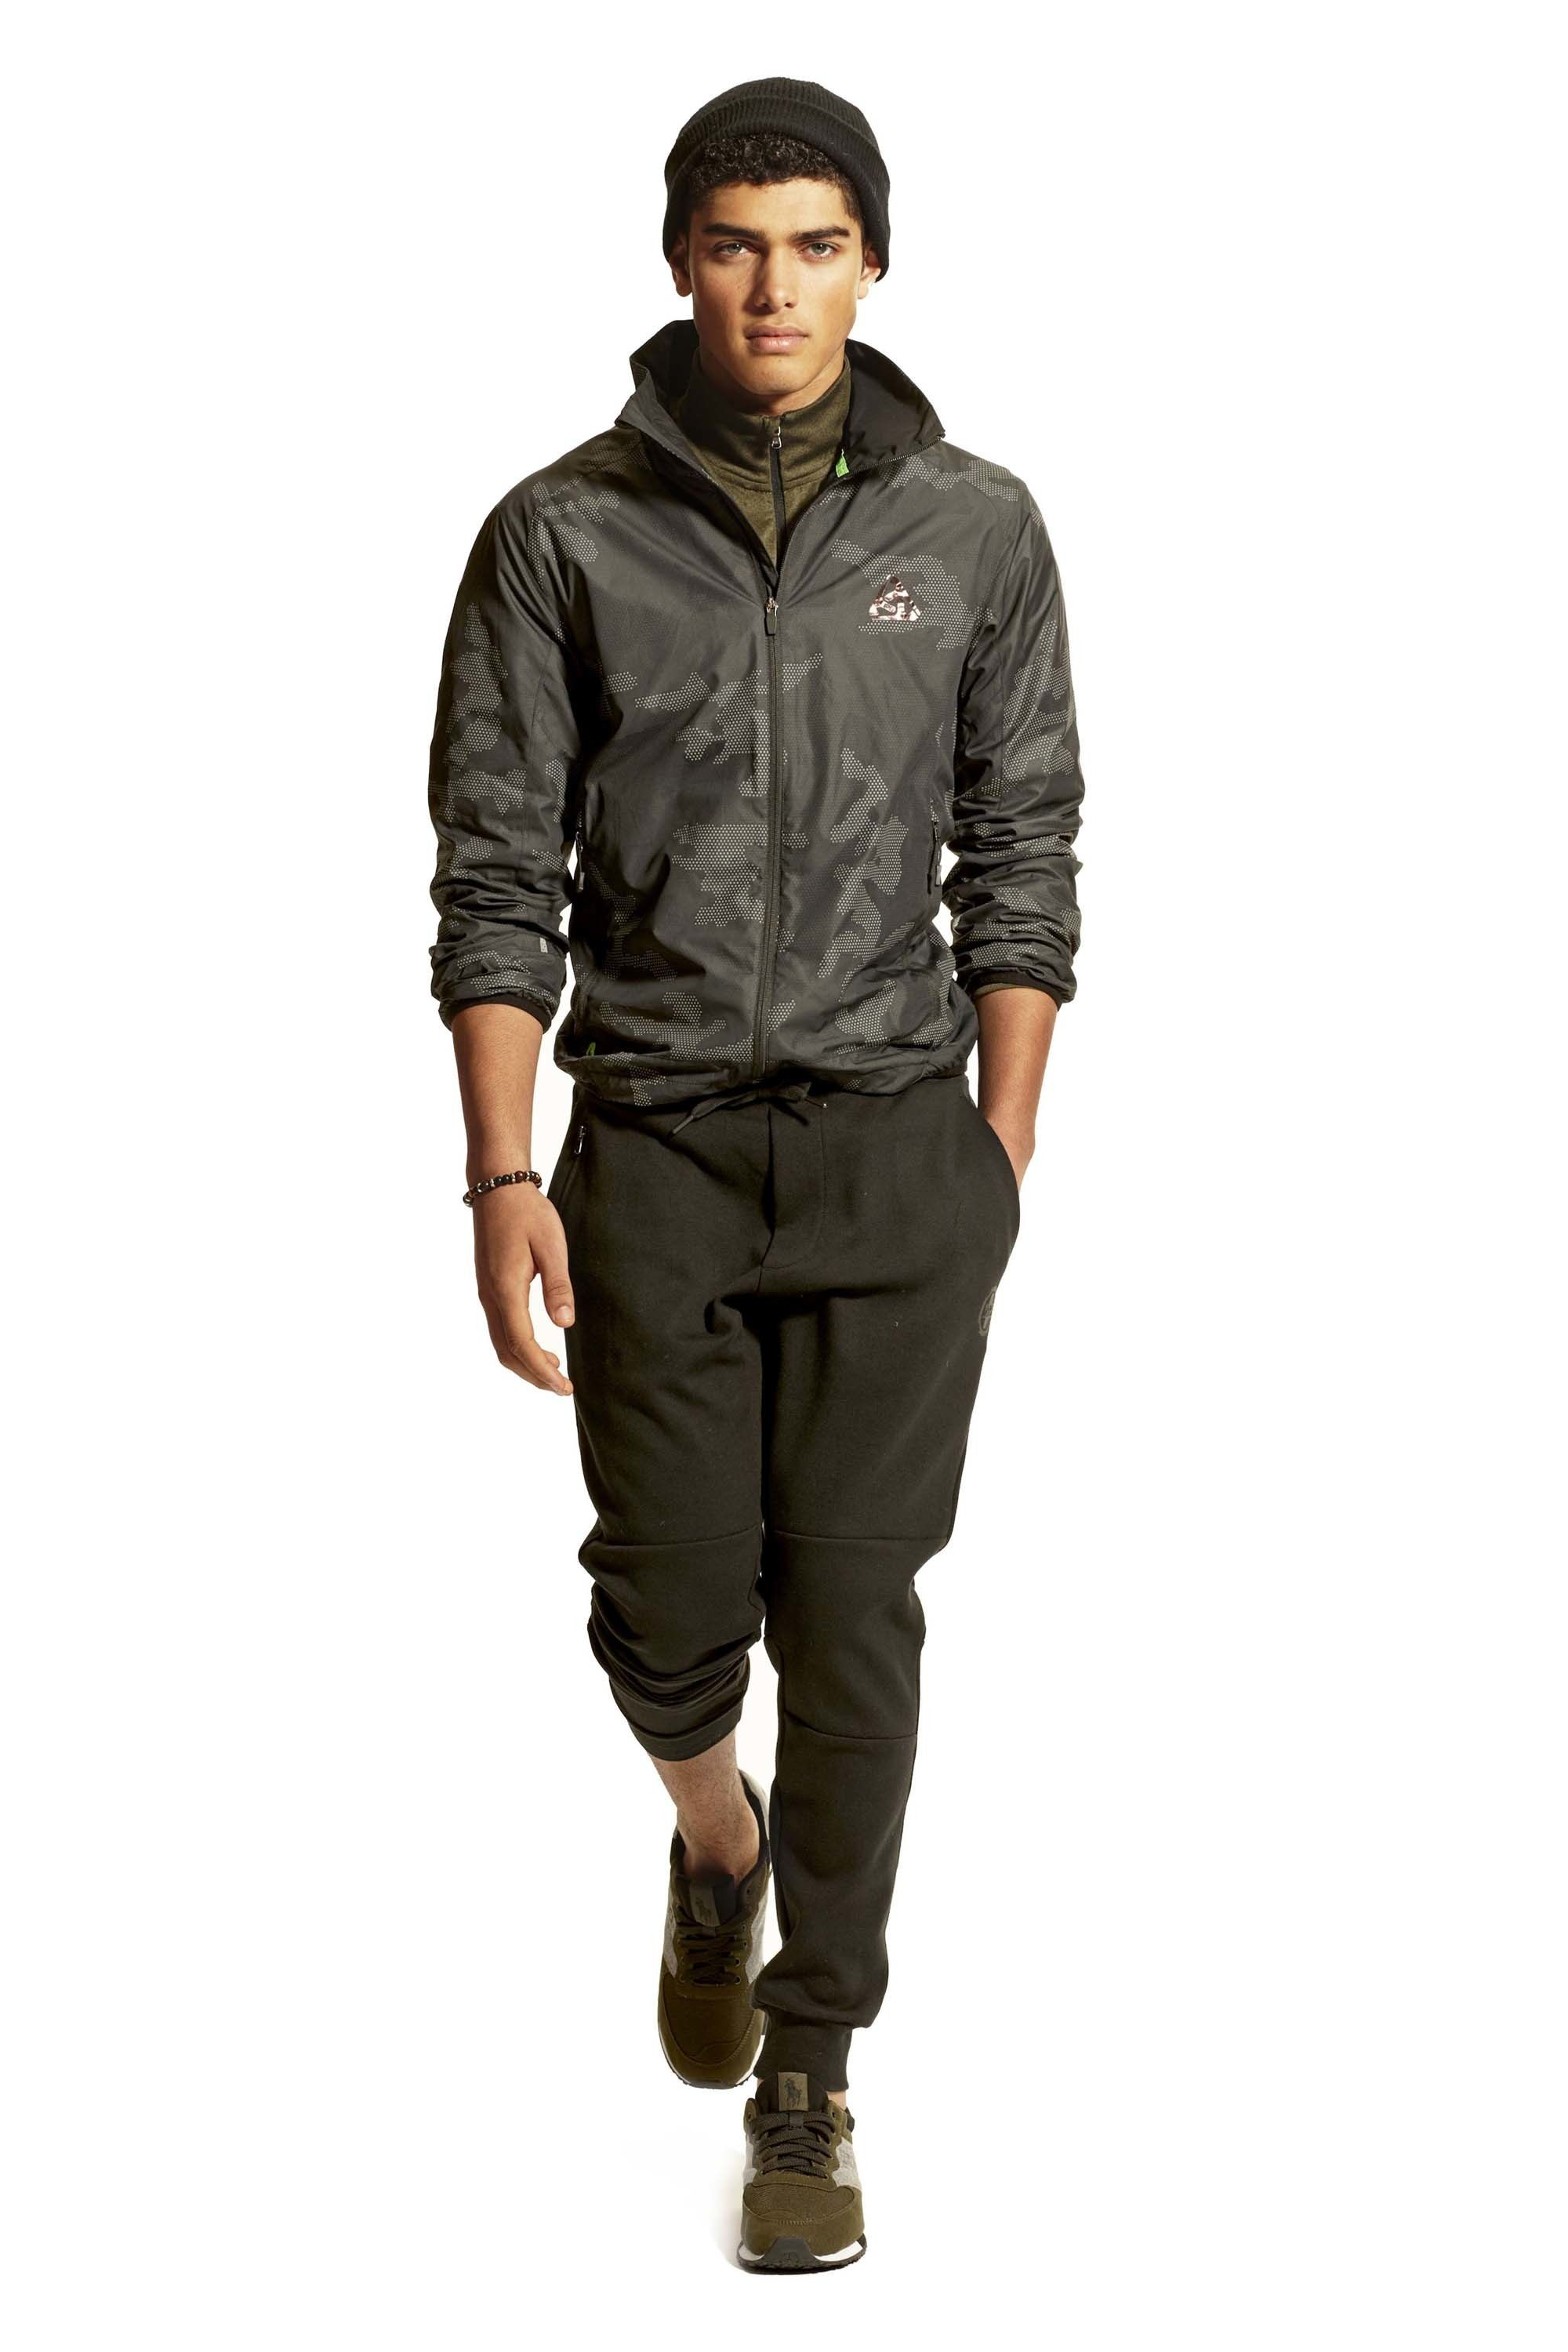 3eb9a1be6aa59 See the complete Polo Ralph Lauren Fall 2016 Menswear collection. Style  Homme